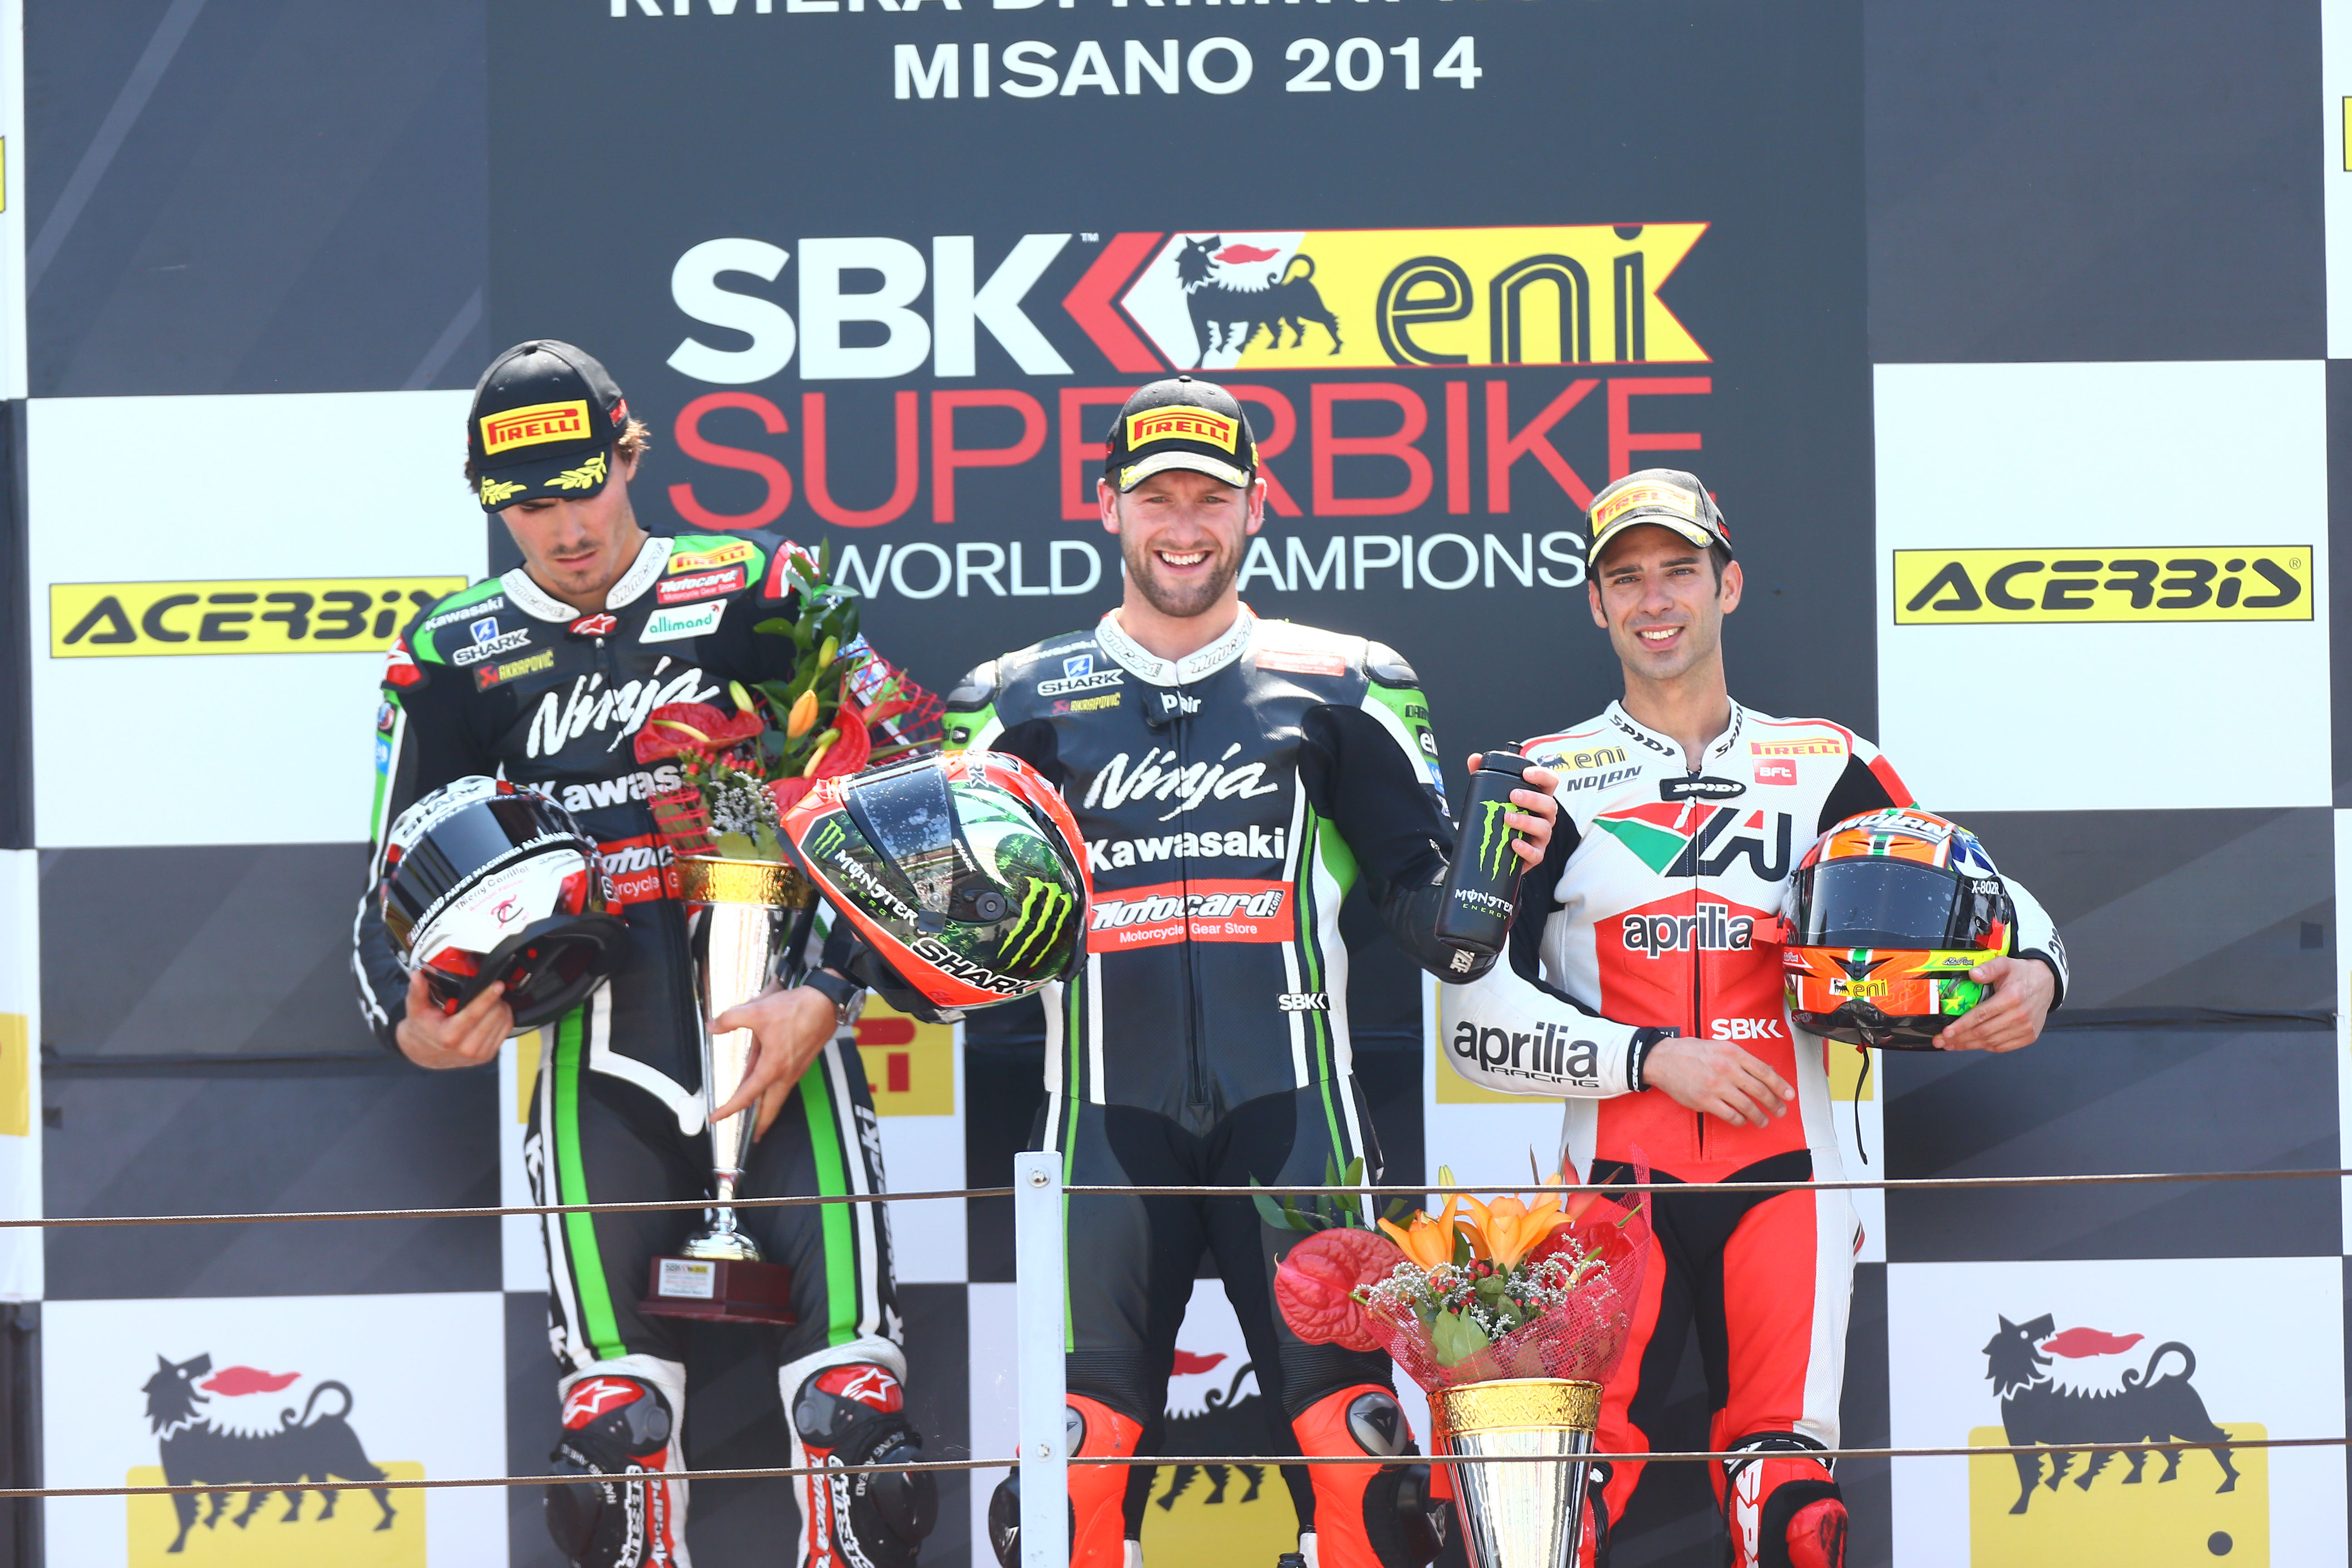 WSB 2014: Championship standings after Misano